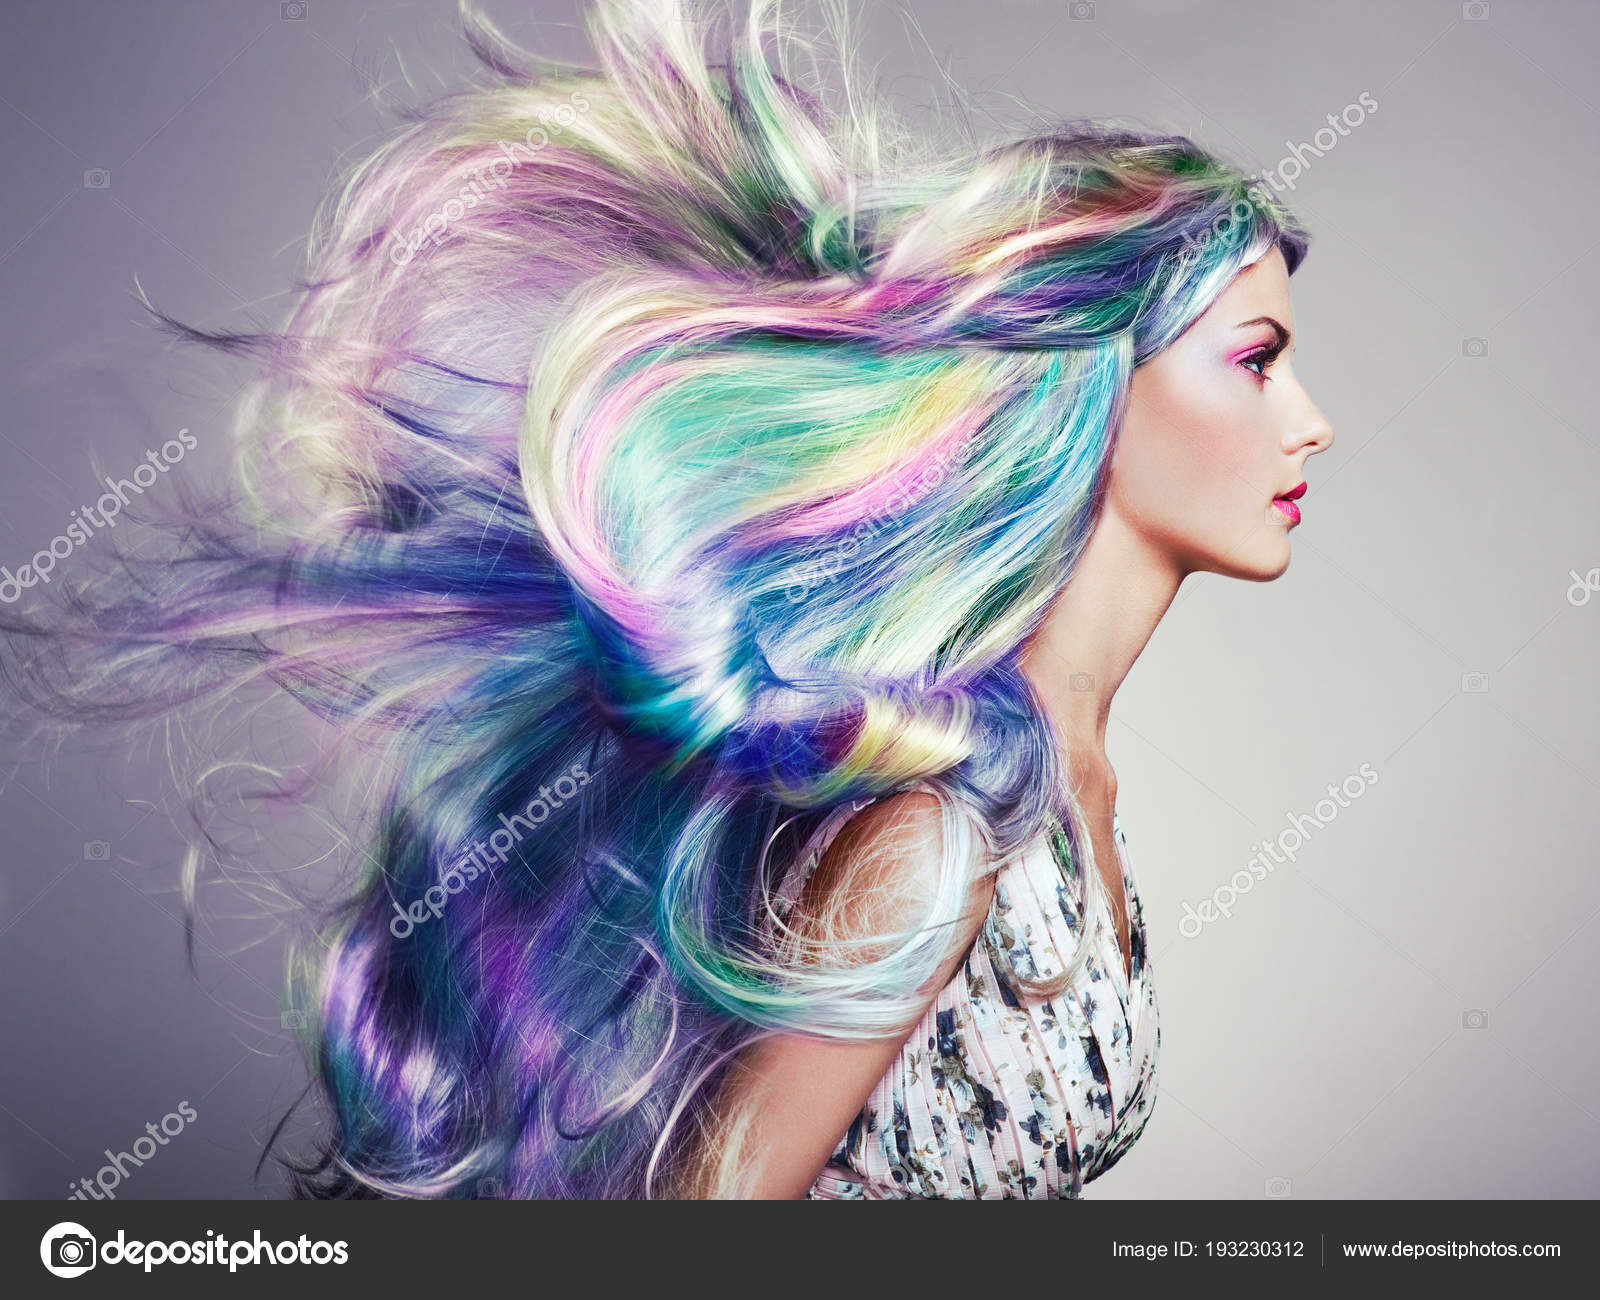 Colorful Hairstyles | Beauty Fashion Model Girl With Colorful Dyed Hair Stock Photo